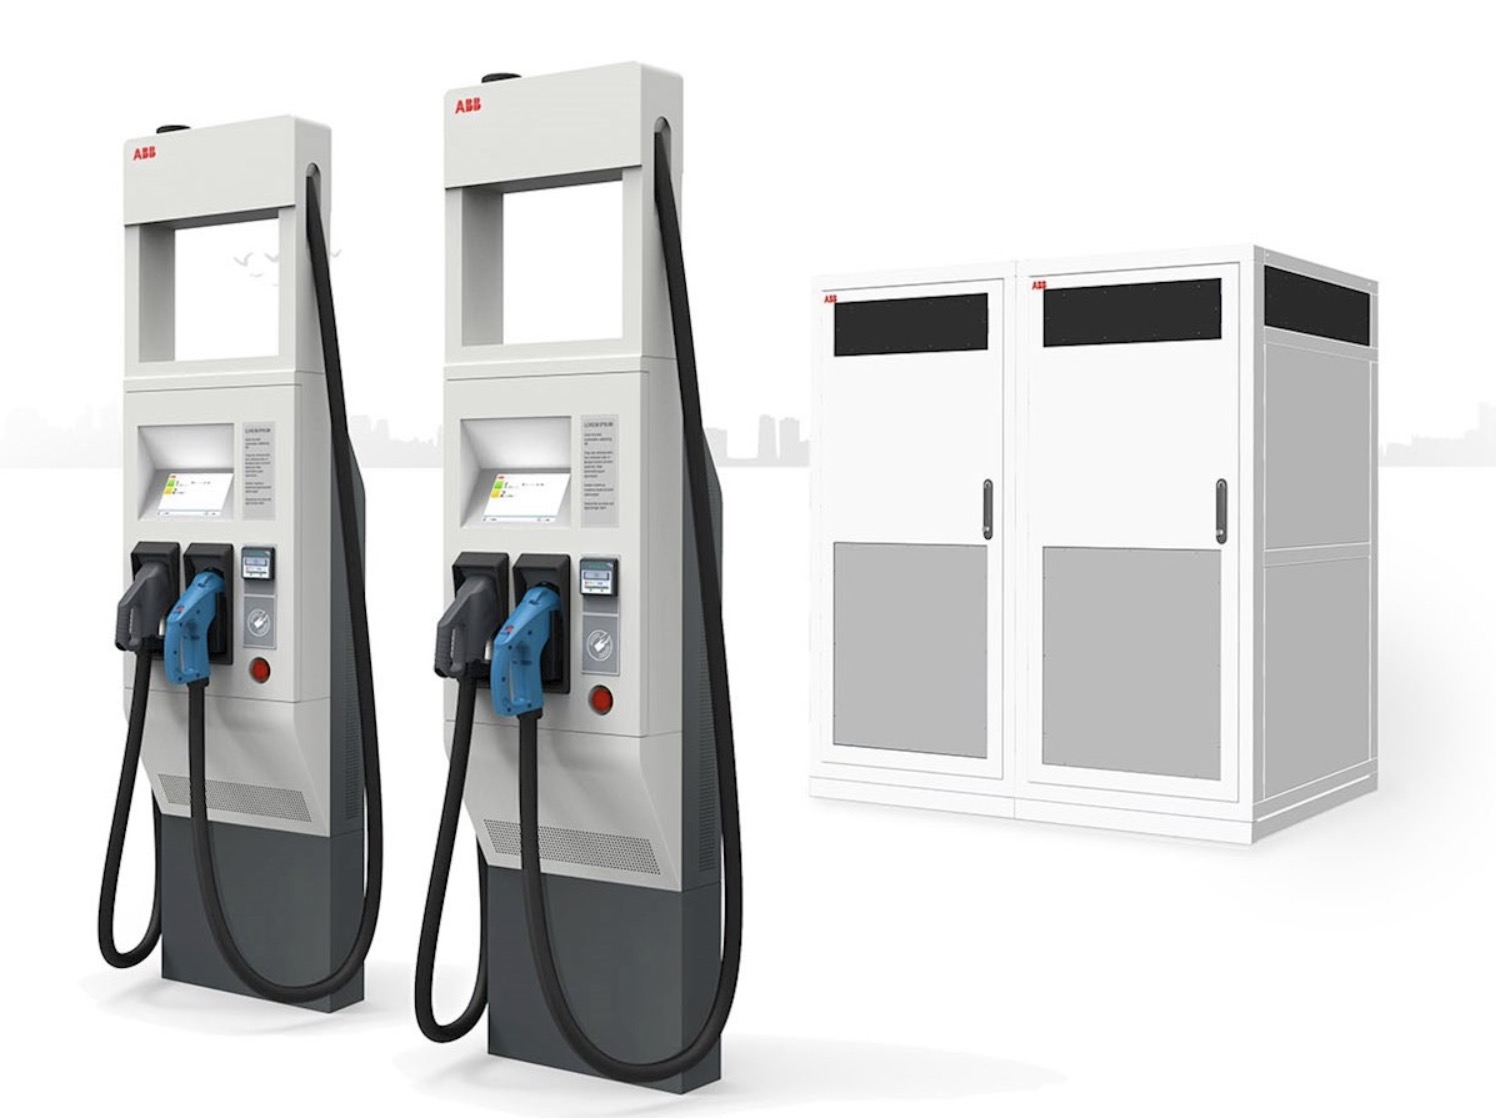 ABB unveils its 350 kW electric vehicle charging tech